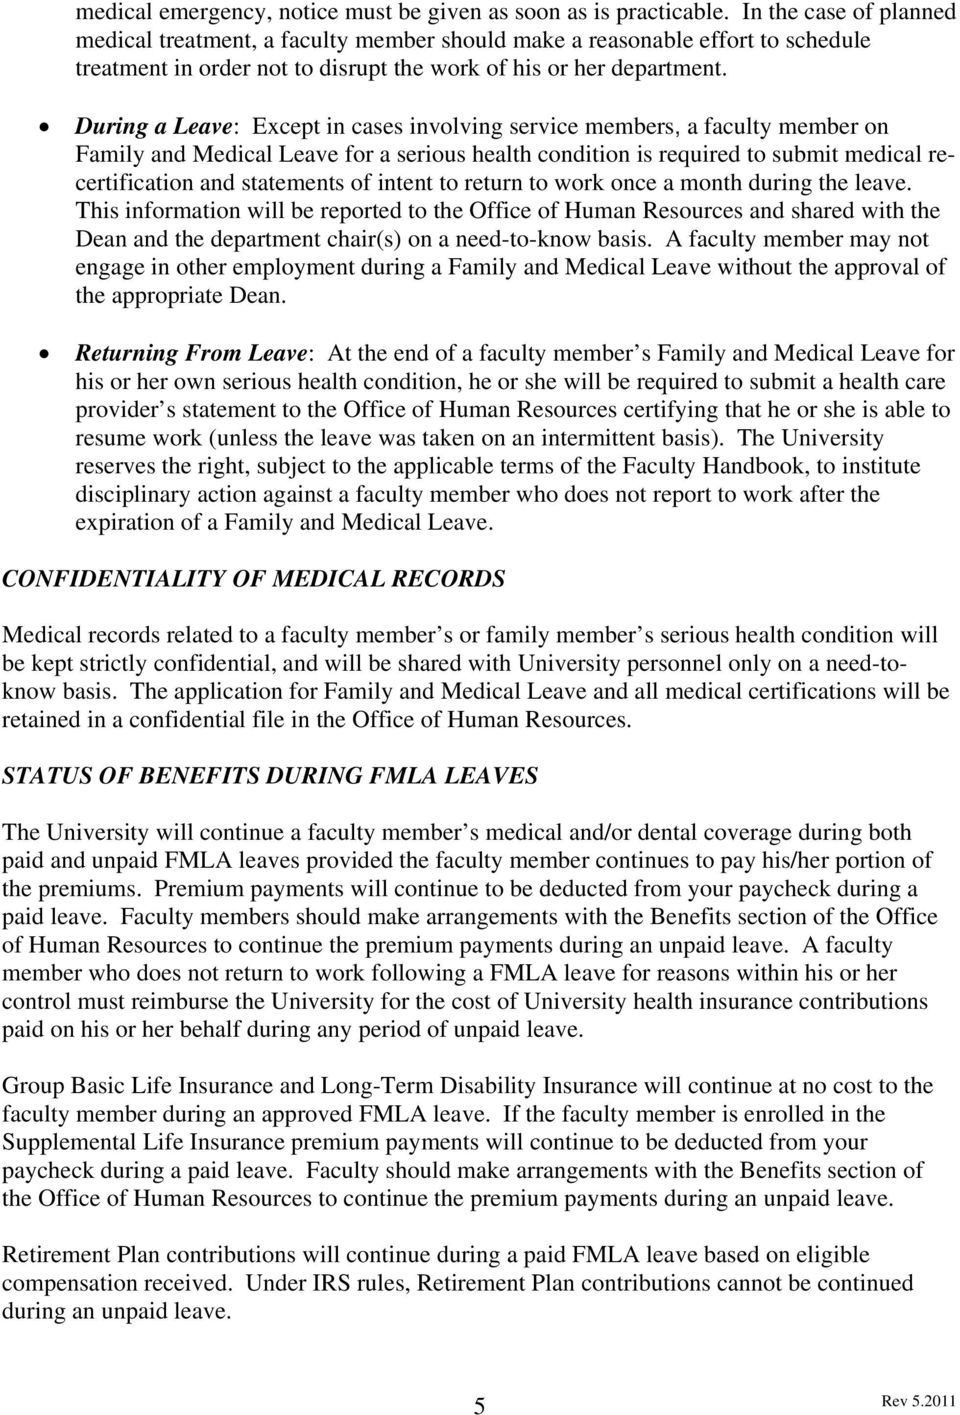 During a Leave: Except in cases involving service members, a faculty member on Family and Medical Leave for a serious health condition is required to submit medical recertification and statements of